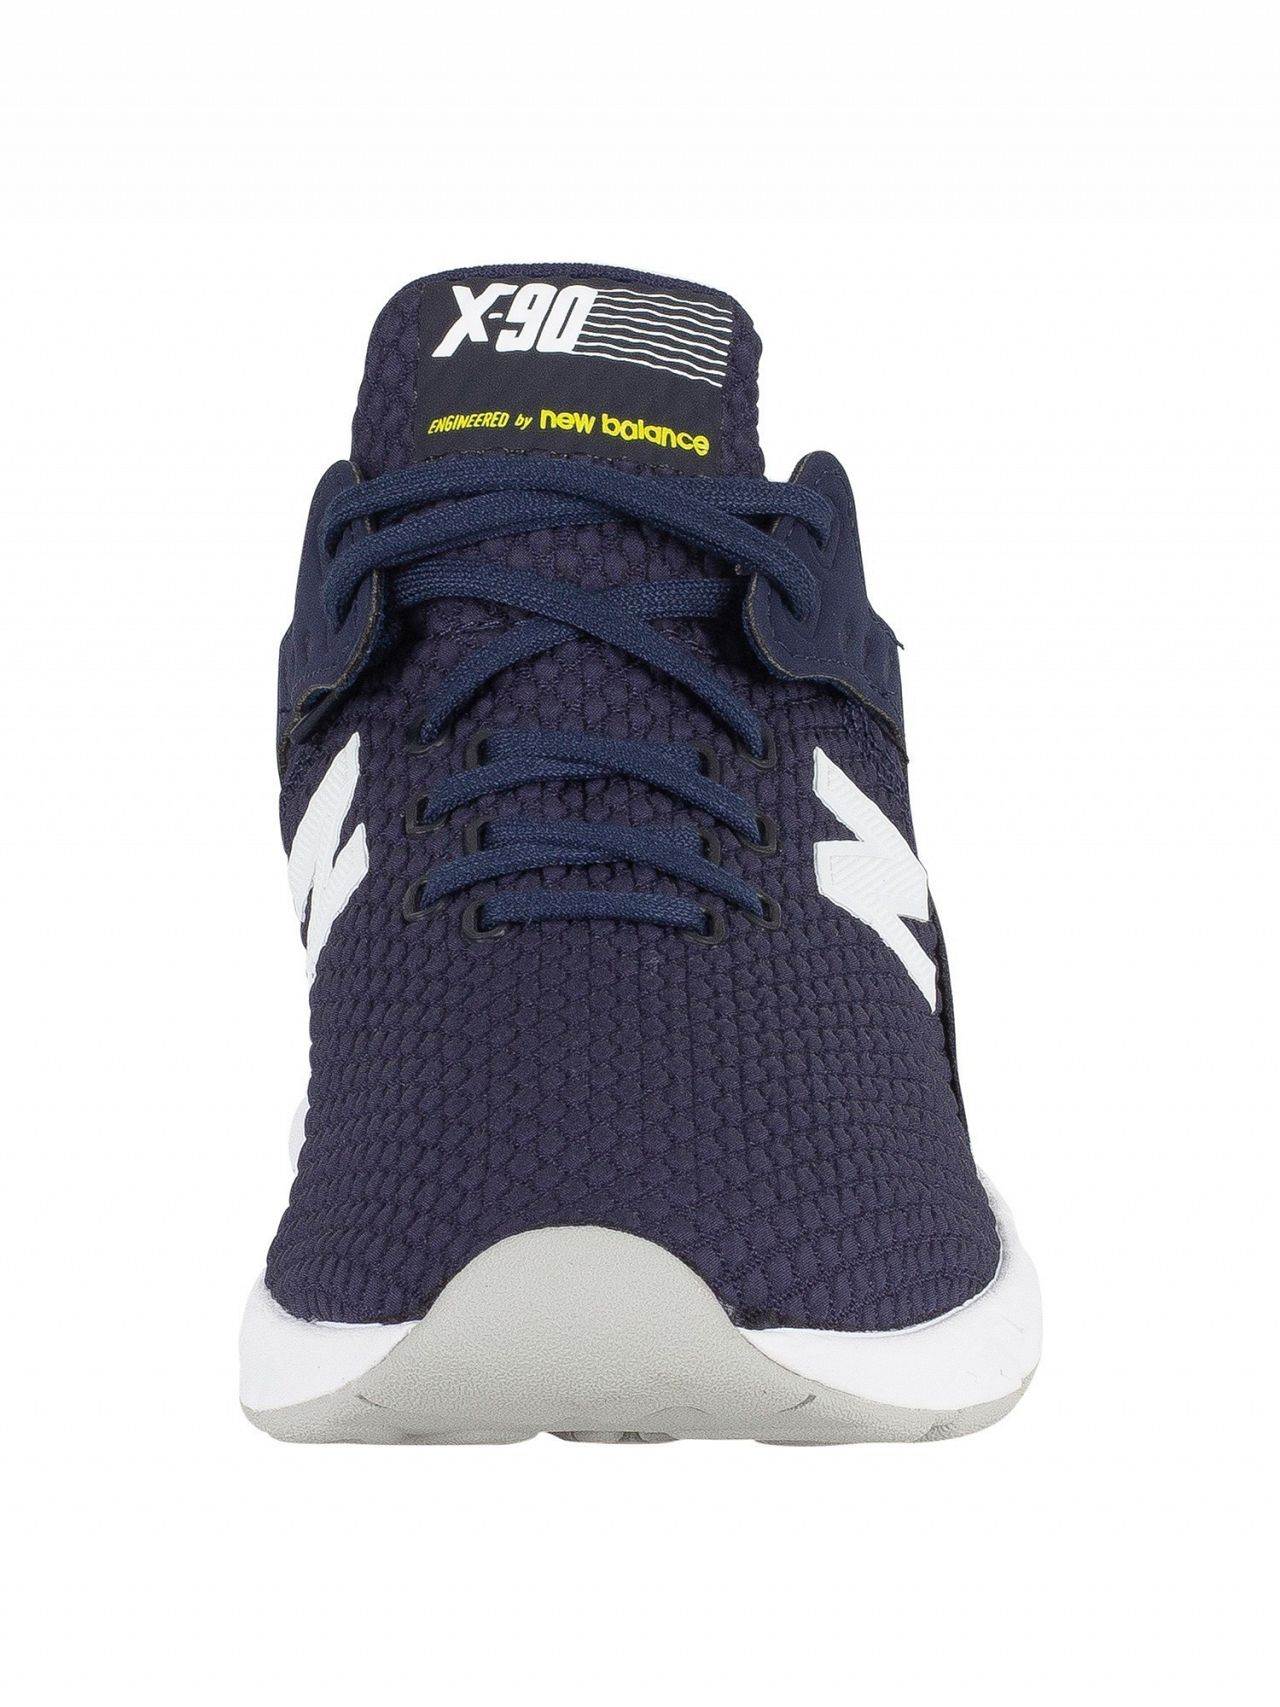 hot sale online a5759 ab34a New Balance Navy Blue X-90 Trainers